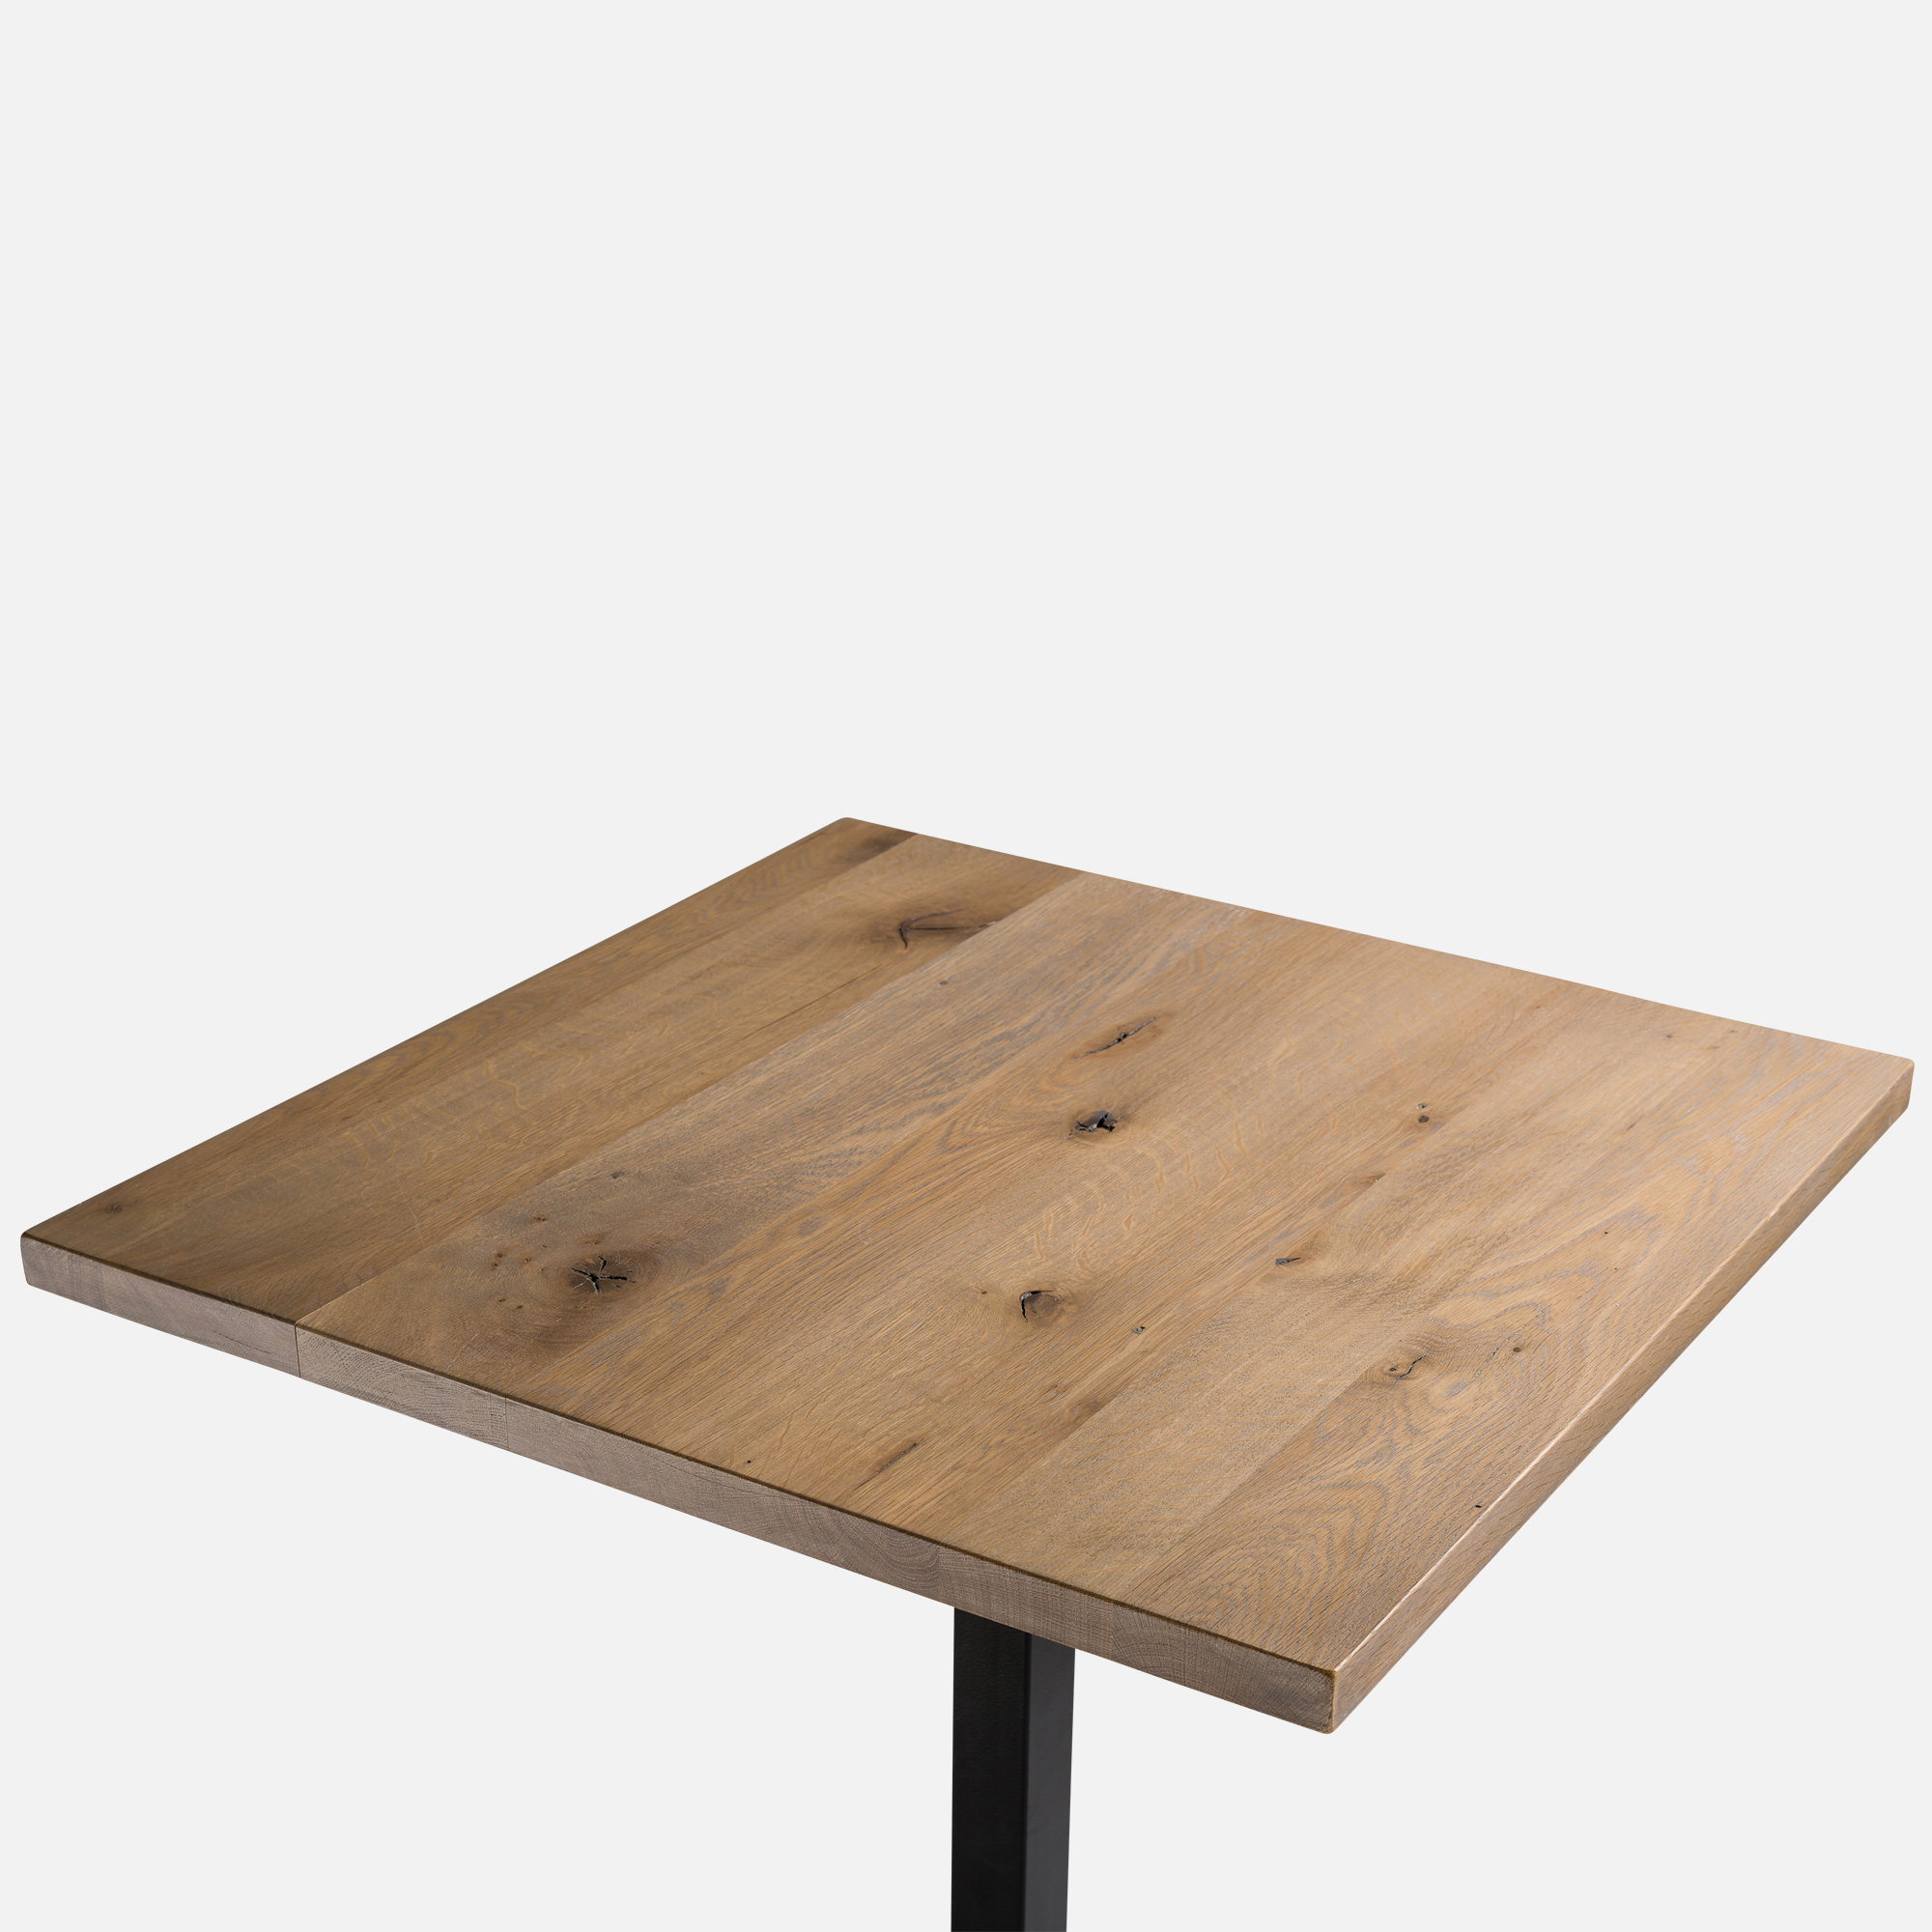 Table bois chene massif maison design - Plateau de table chene massif ...